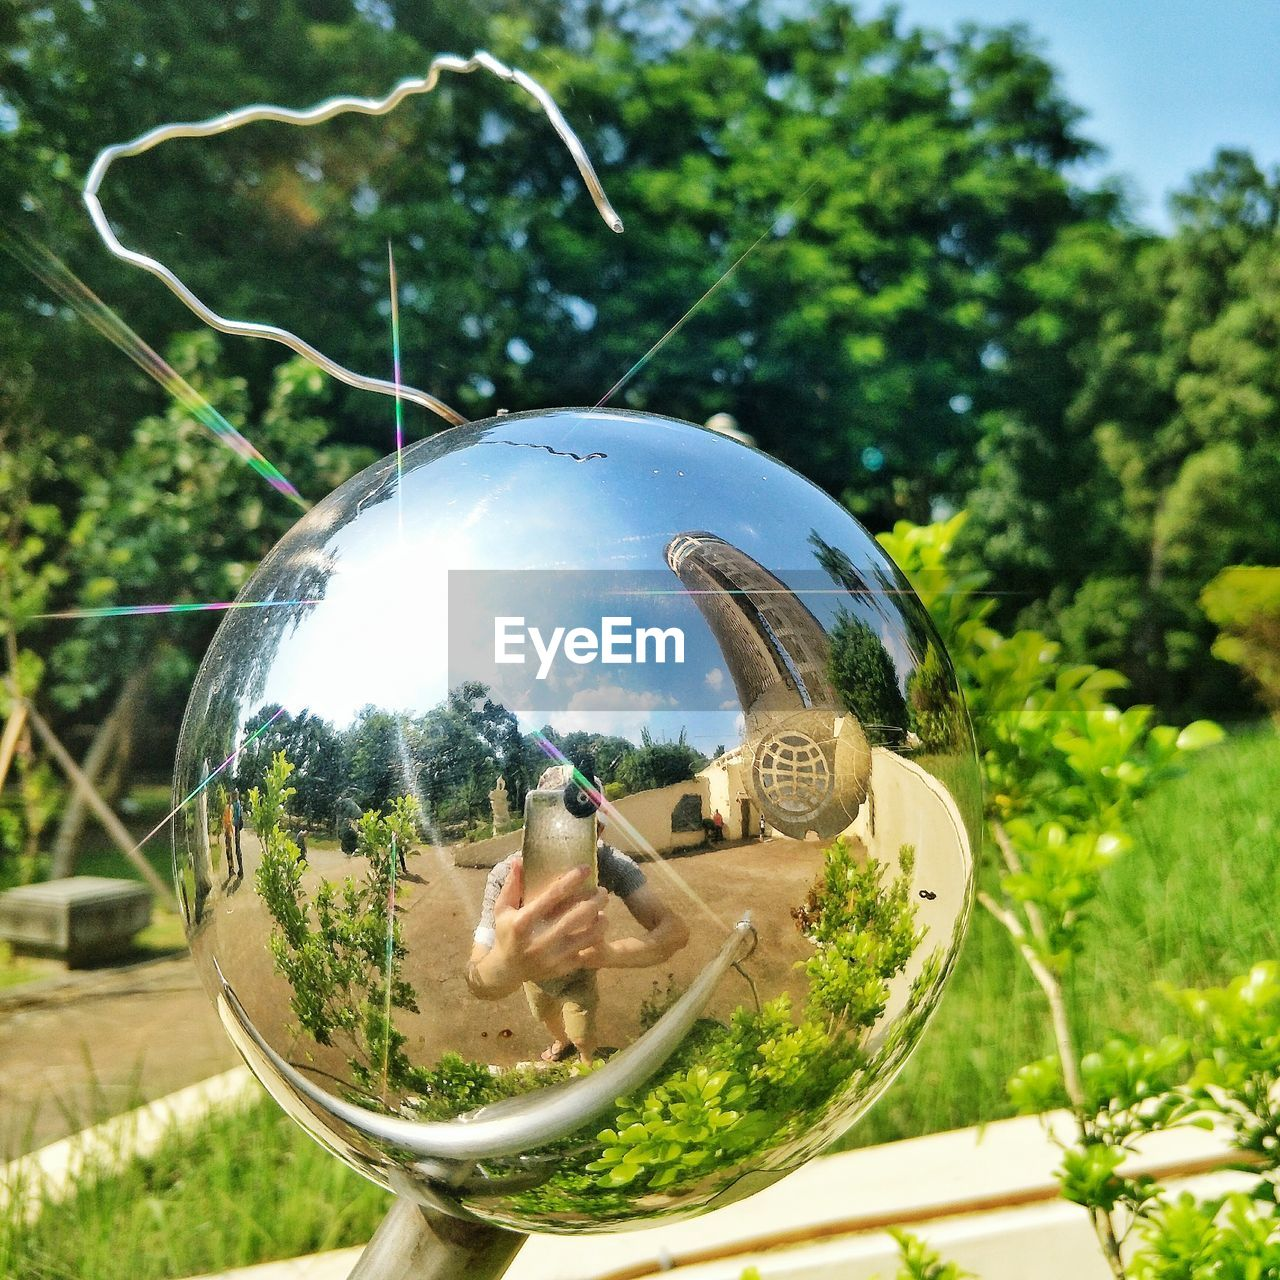 plant, tree, day, reflection, nature, close-up, glass - material, focus on foreground, transparent, outdoors, sphere, sunlight, no people, green color, land vehicle, mirror, growth, shape, land, sky